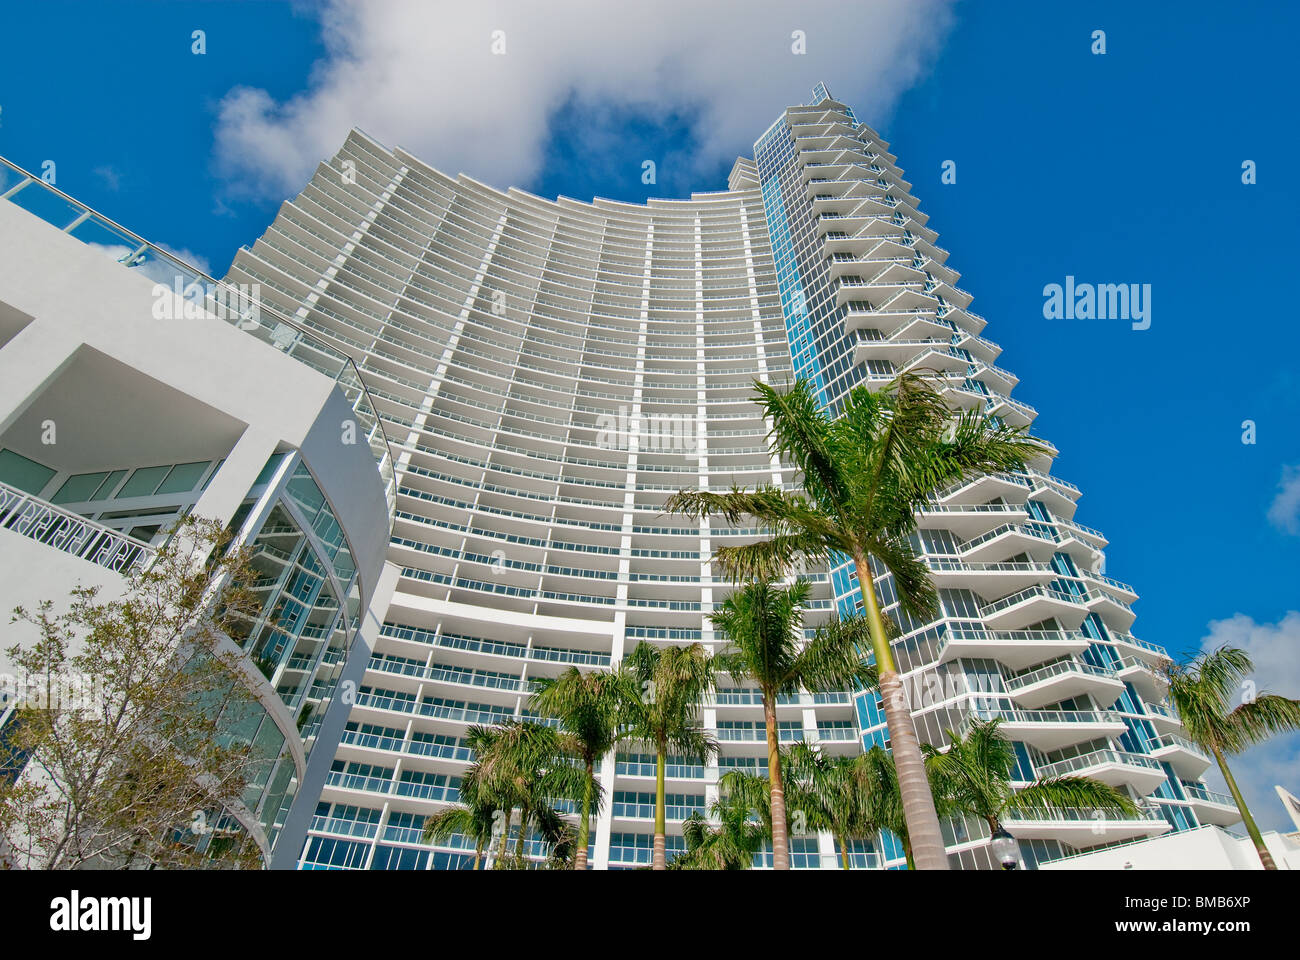 Paramount Bay condo tower on Biscayne Bay in Miami, Florida, USA - Stock Image